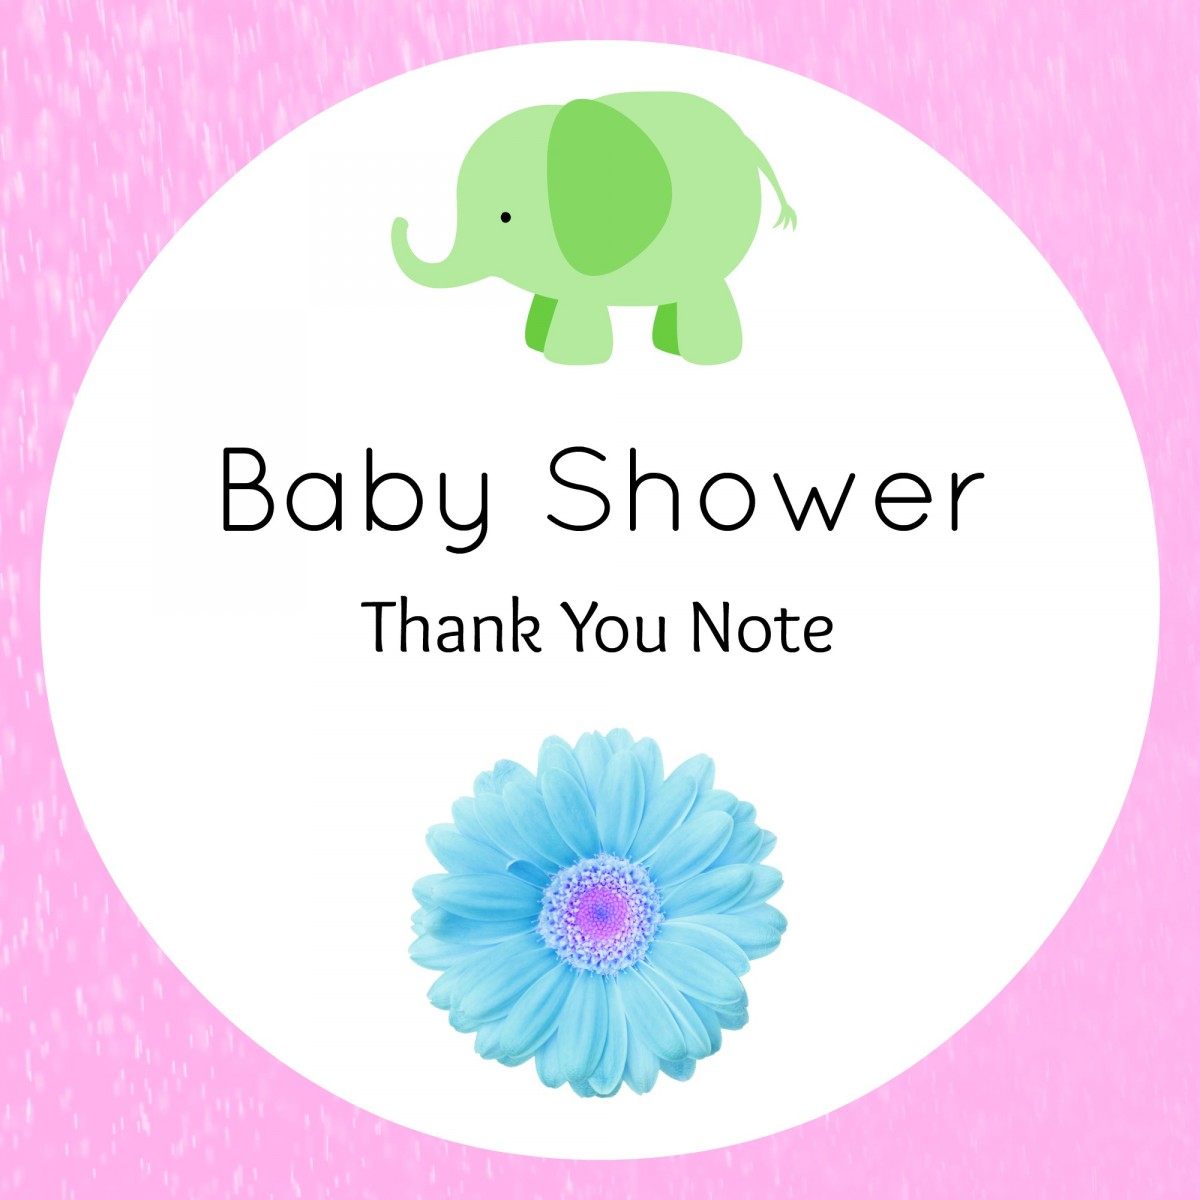 baby shower thank you note confetti bliss